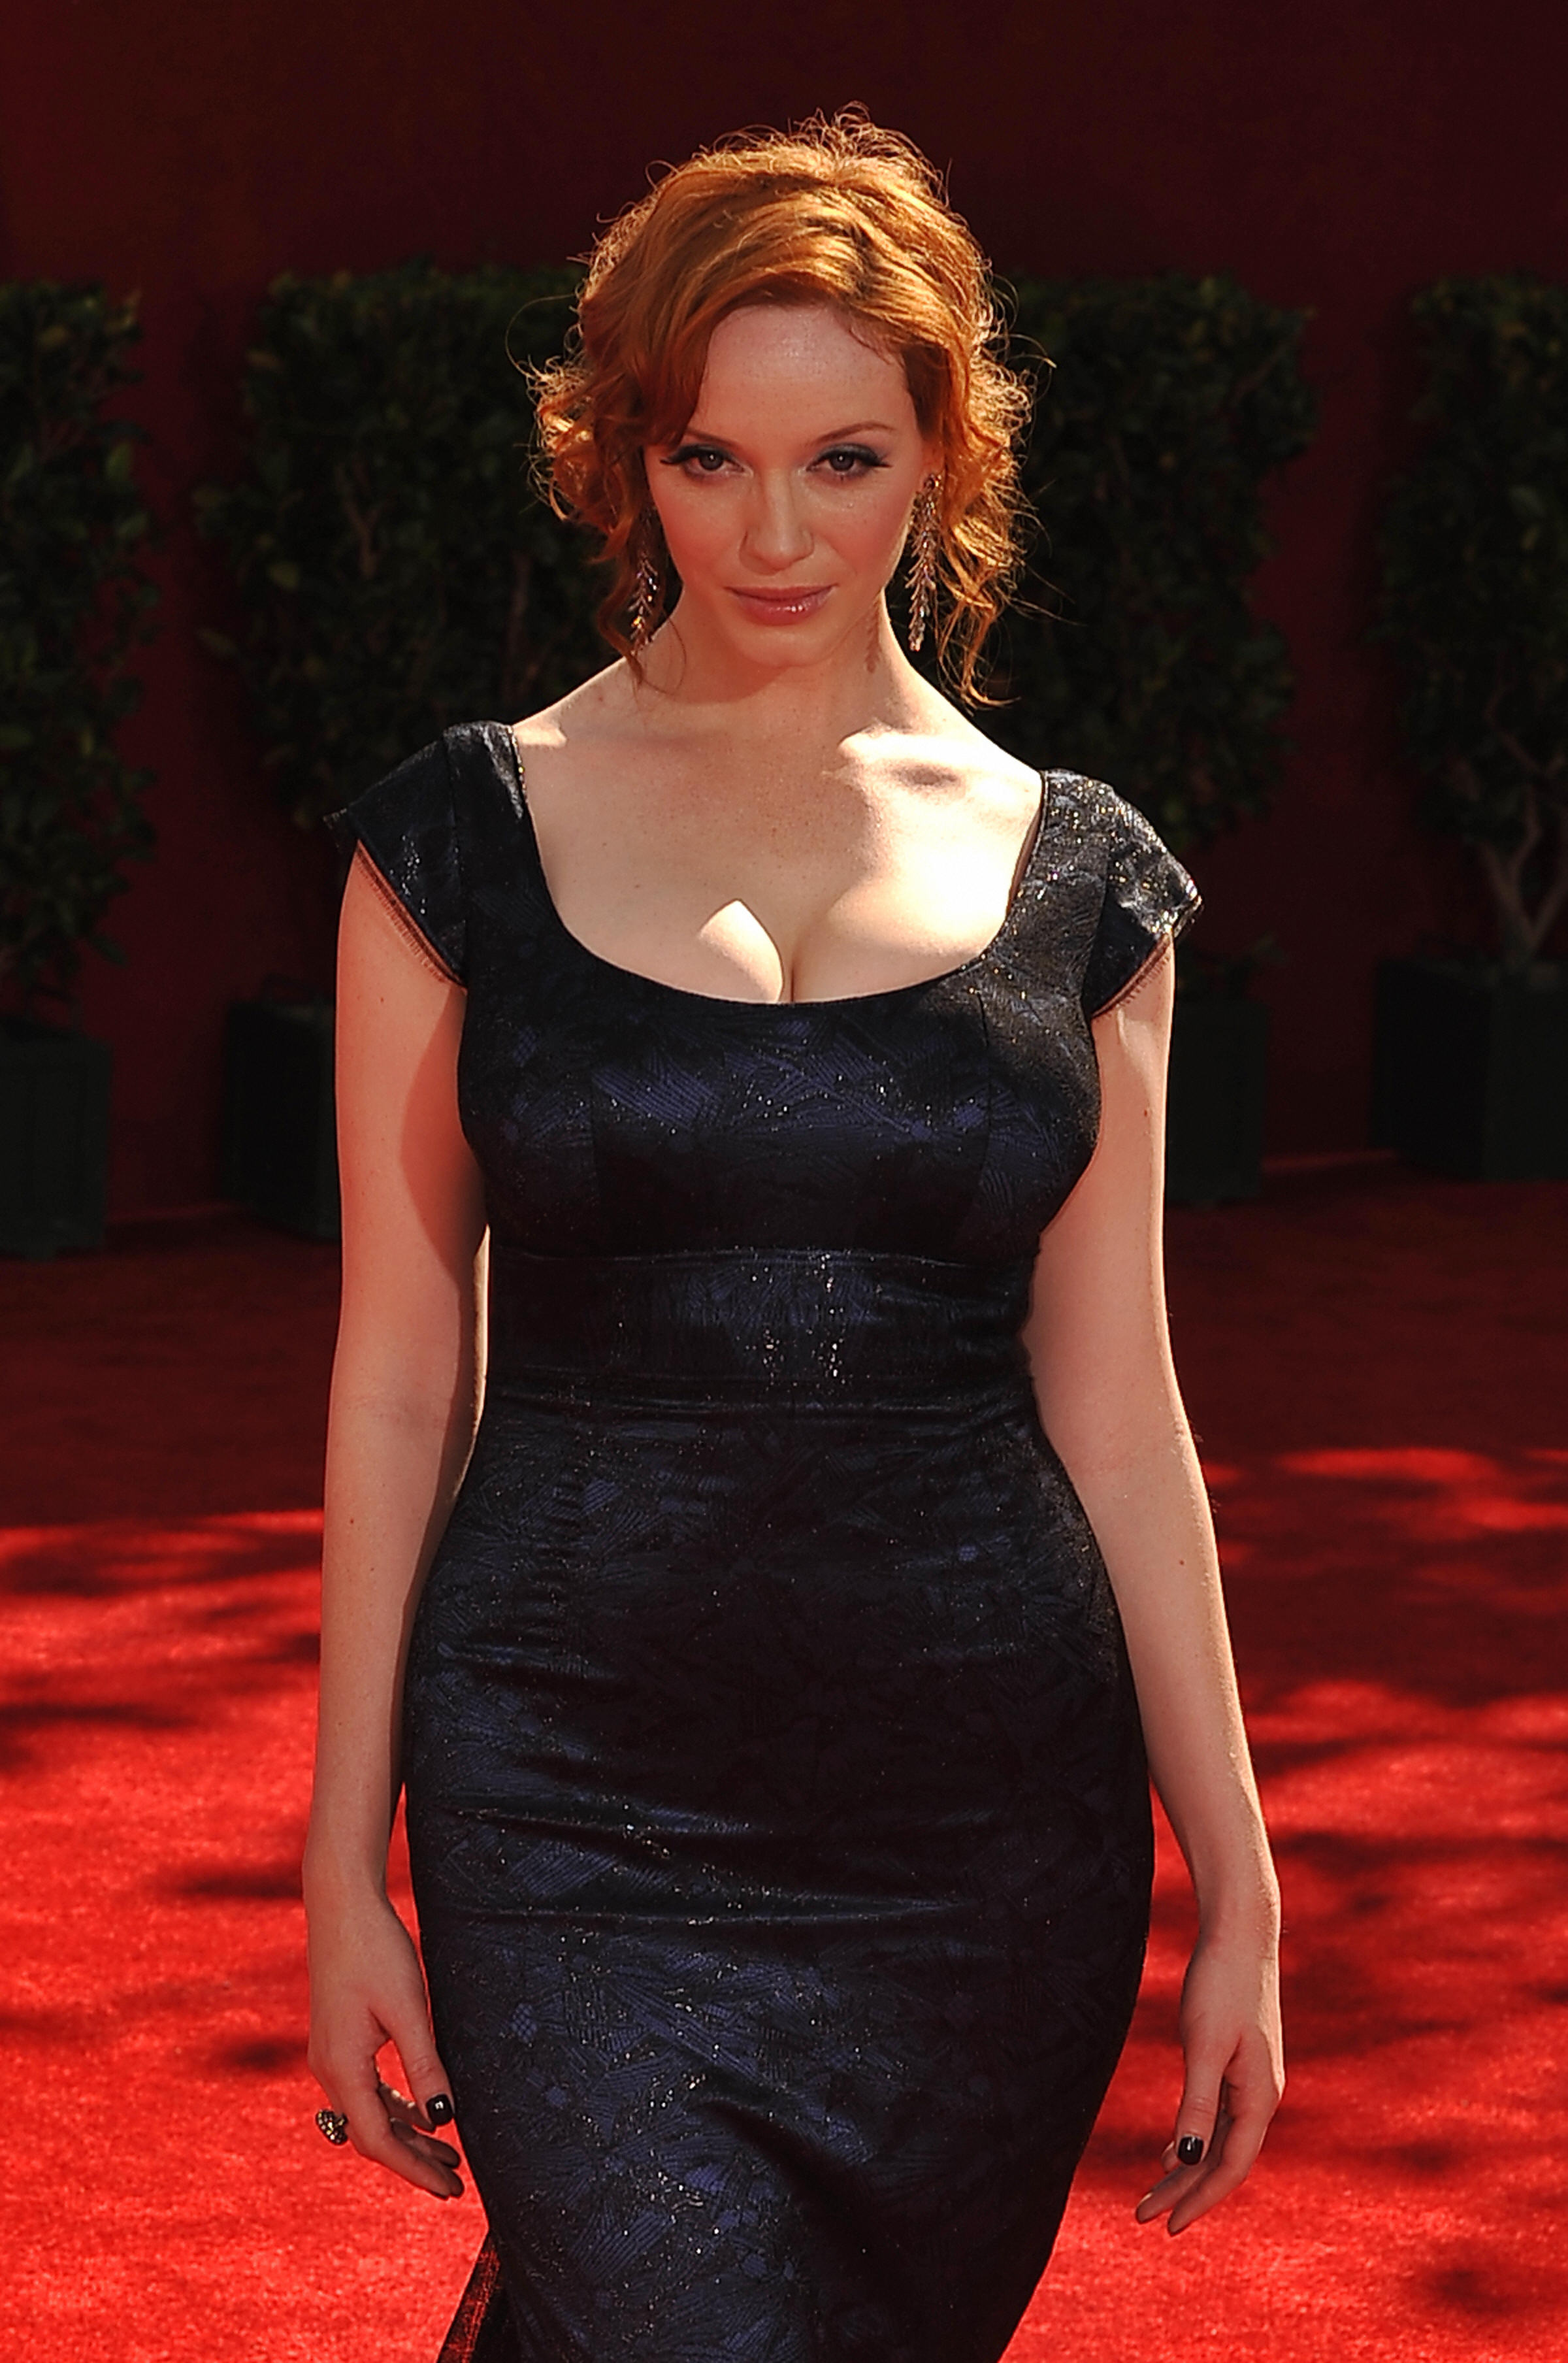 hendricks black single men A letter to men by christina hendricks about a month after we started dating, he bought me this amazing black-and-white what would your letter to men.